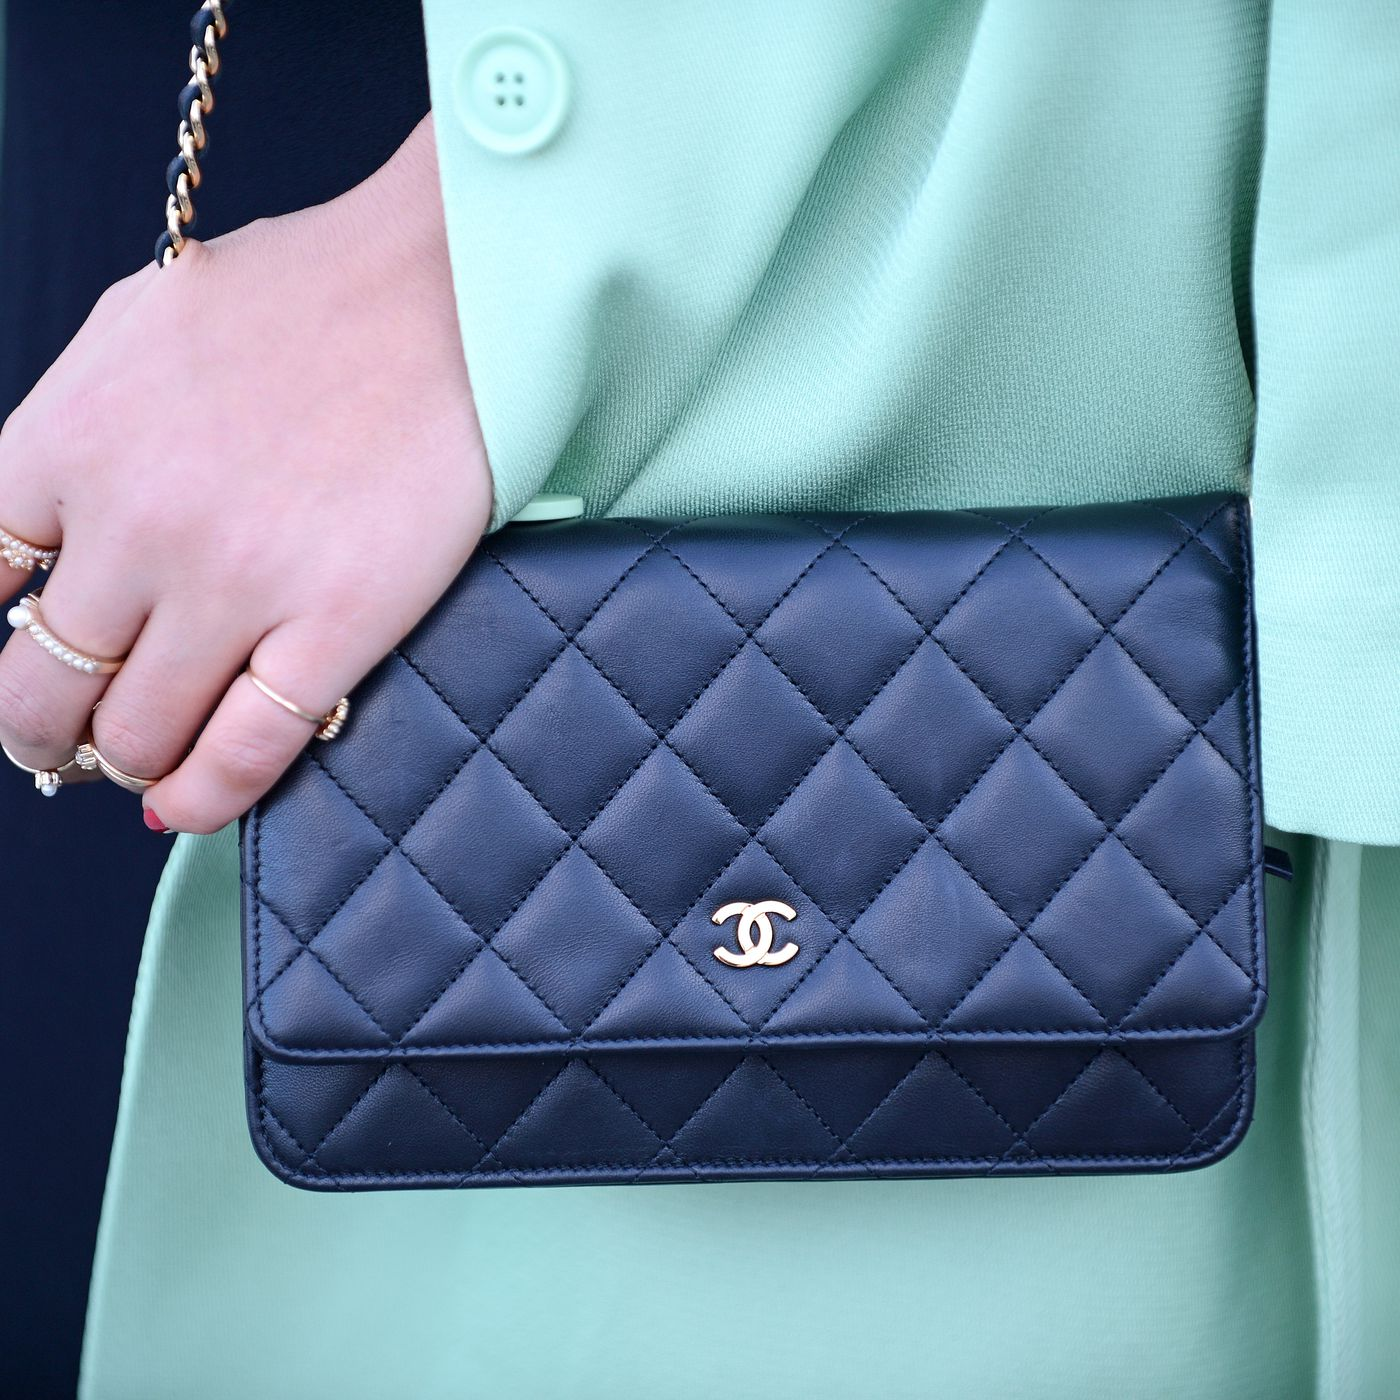 2b645bc9e492 Why a Chanel Bag Is Never Just a Chanel Bag - Racked